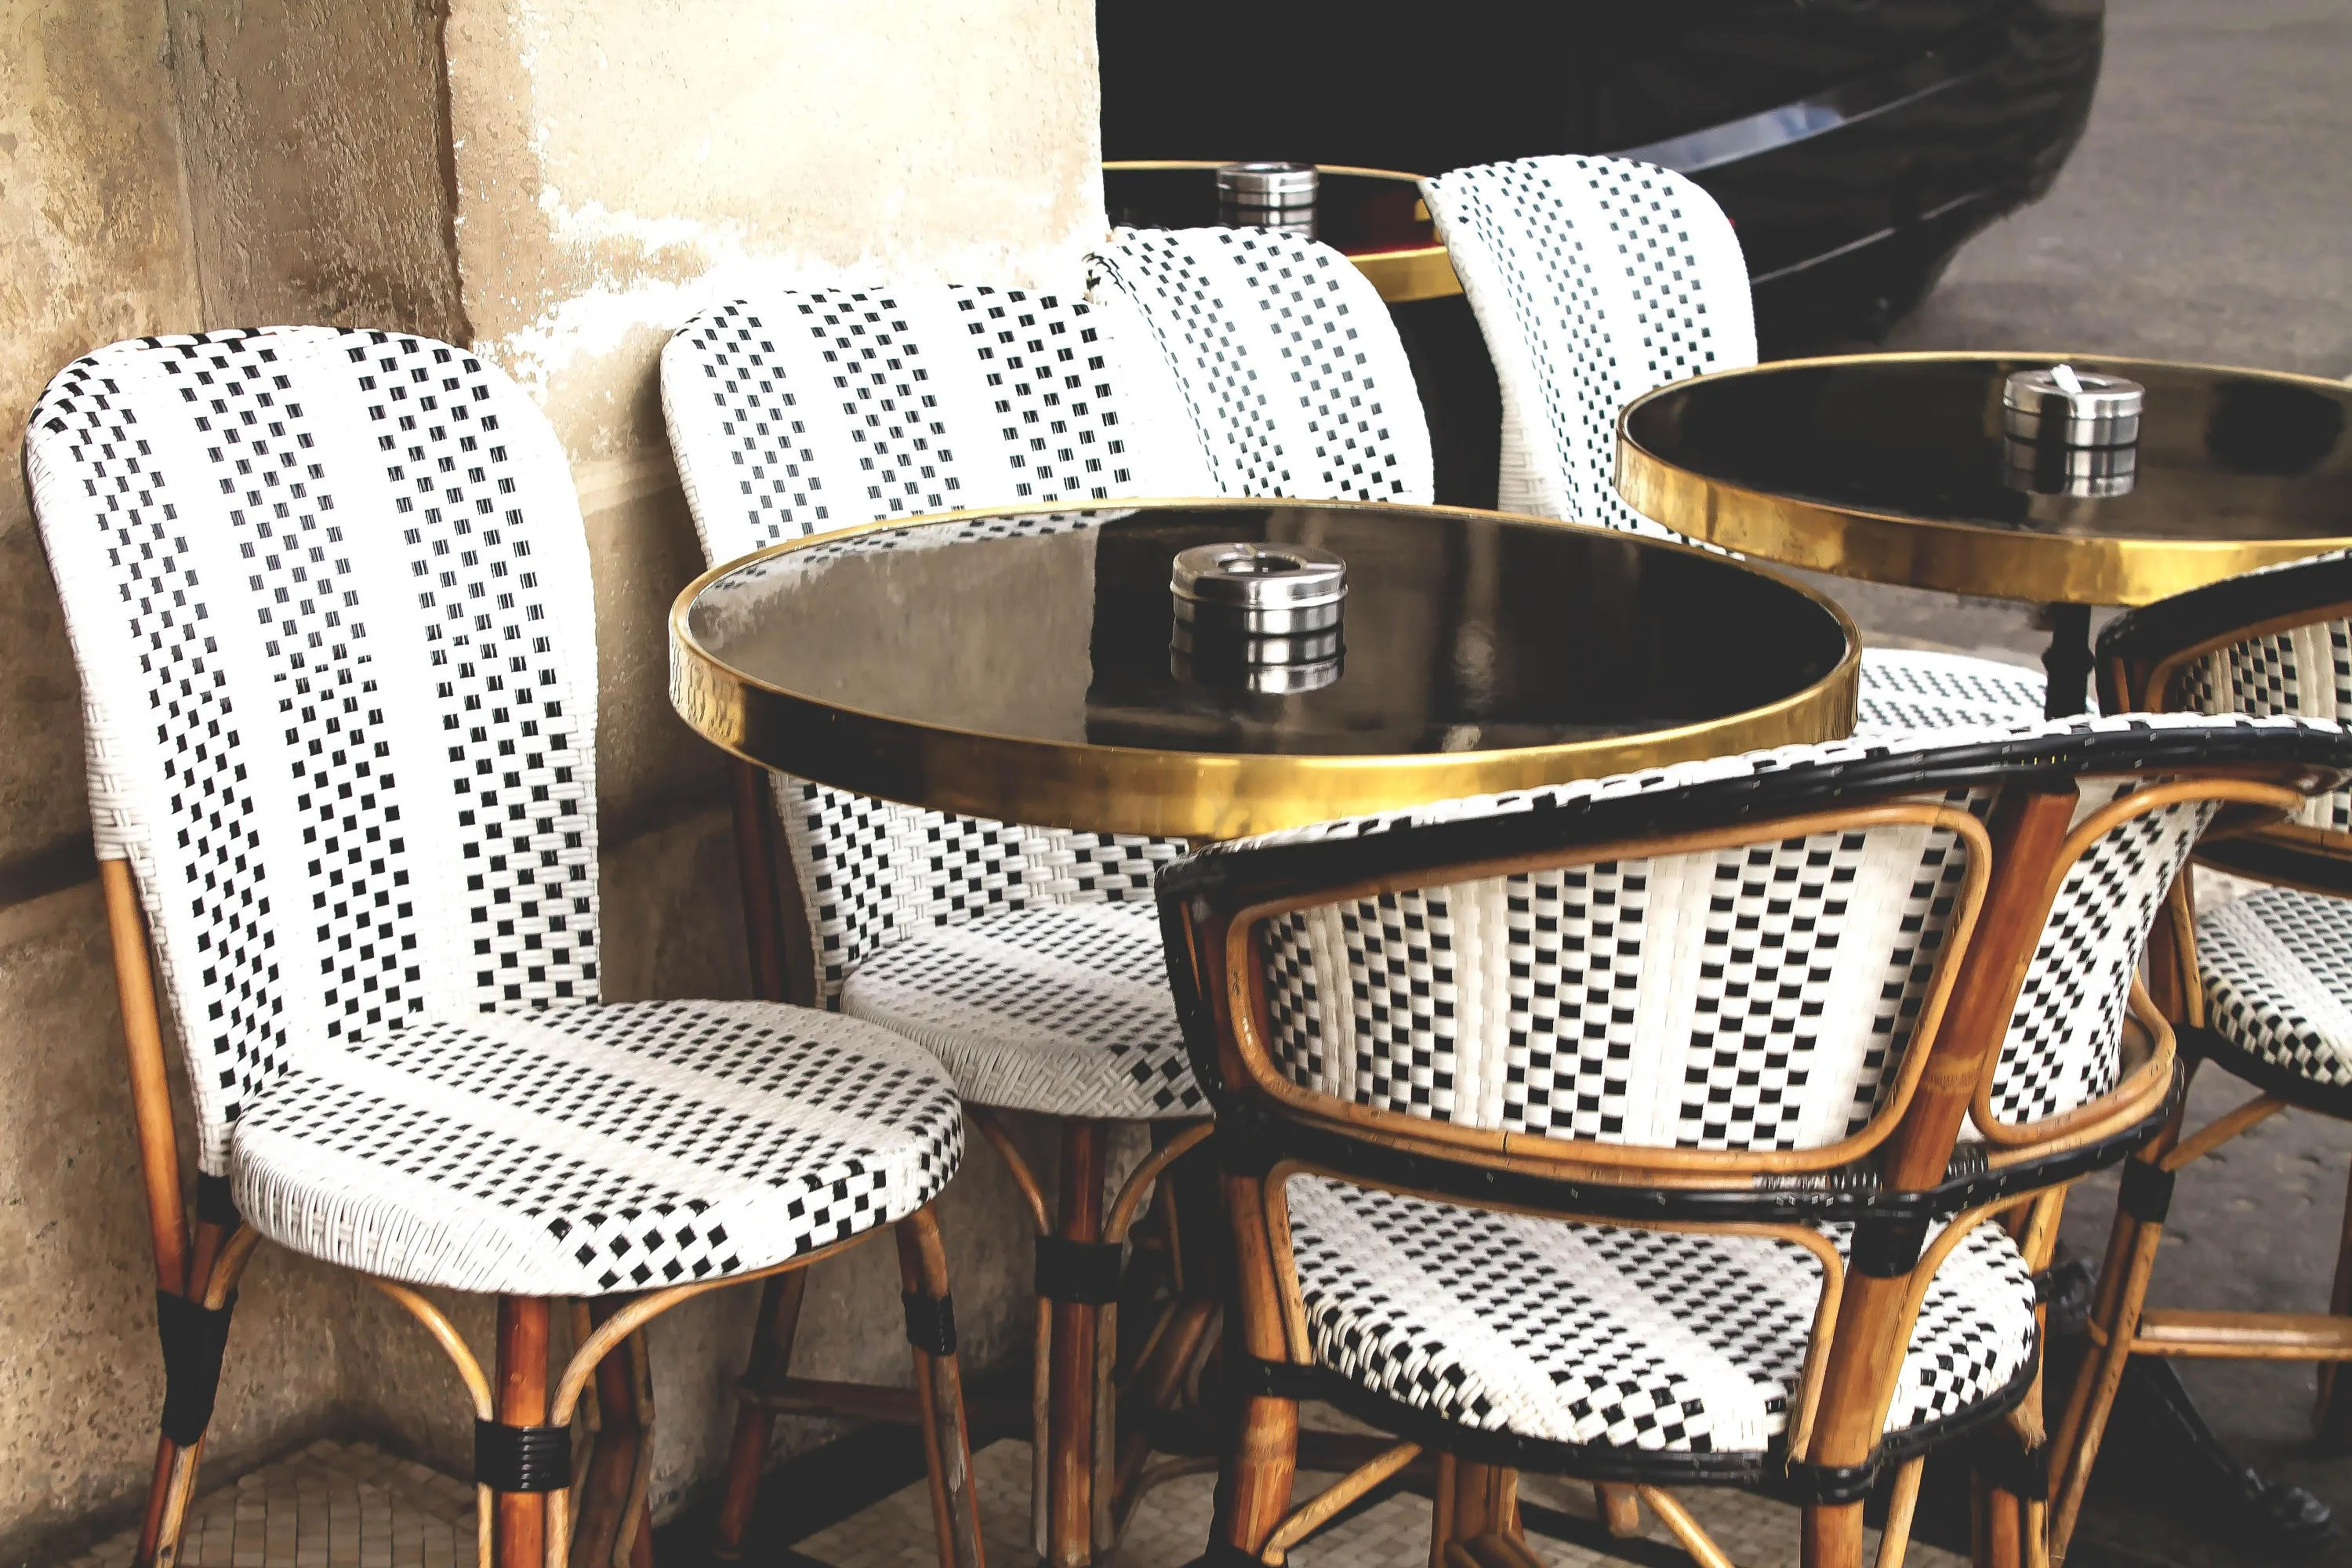 parisian cafe chairs easy chair dimensions paris france wall art street etsy image 0